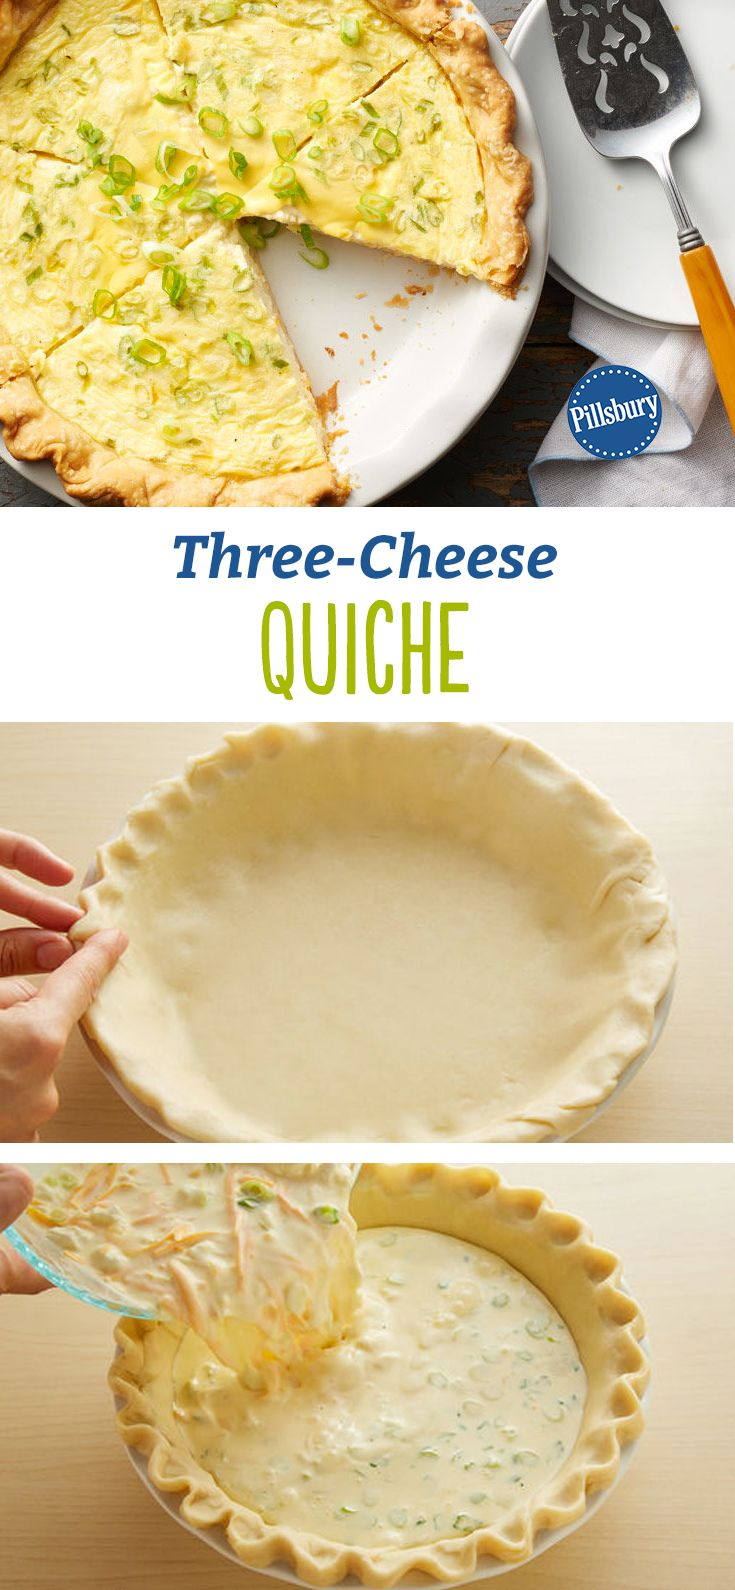 Three-Cheese Quiche: Stir up this creamy light quiche in just 15 minutes using Pillsbury™ refrigerated pie crust. Perfect for any meal time, but lovely for breakfast or brunch!